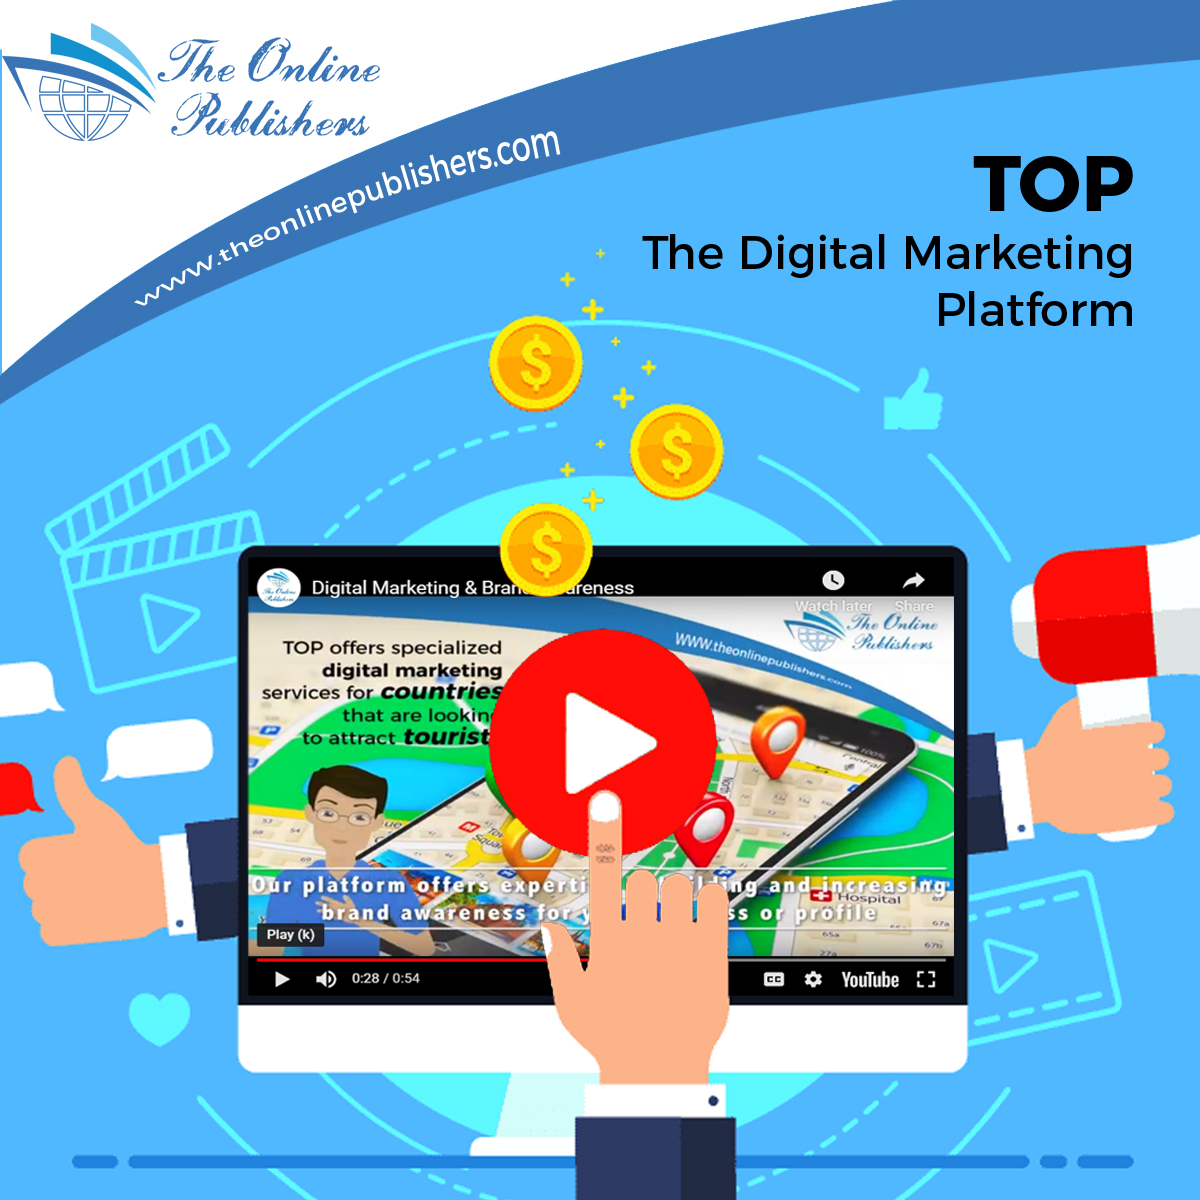 4 Great Services For Digital Marketing Solutions Provided Through TOP Platform